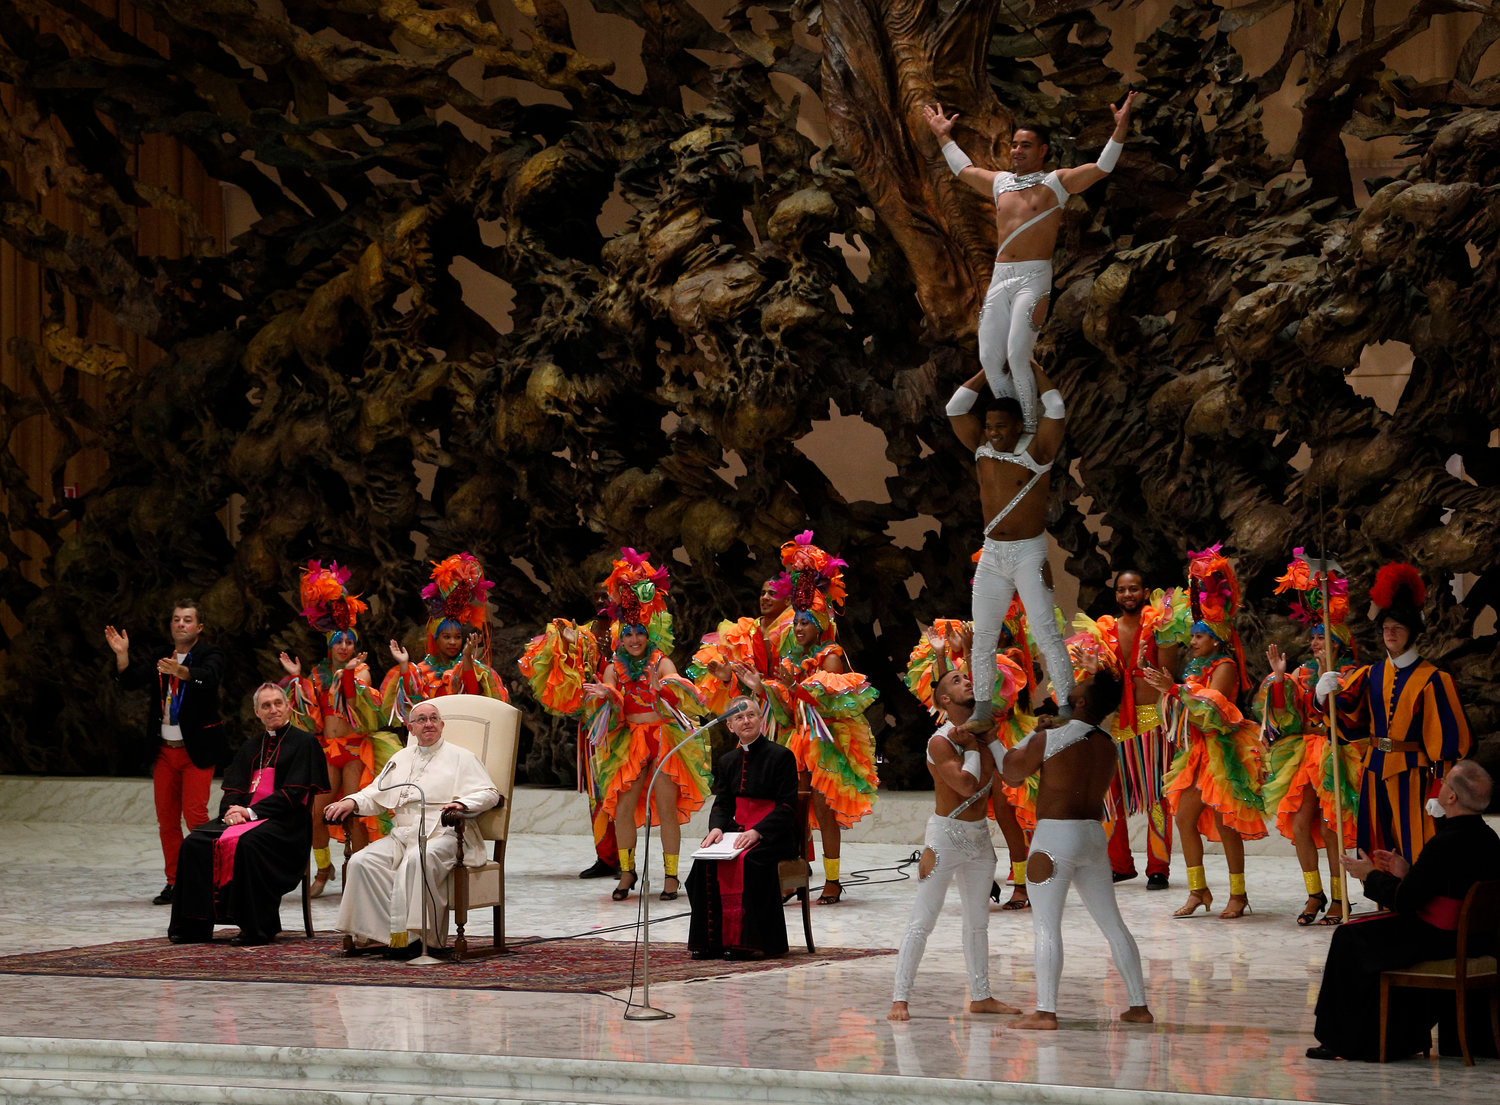 Pope Francis watches as members of CirCuba, the Cuban national circus, perform during his general audience in Paul VI hall at the Vatican Jan. 2.